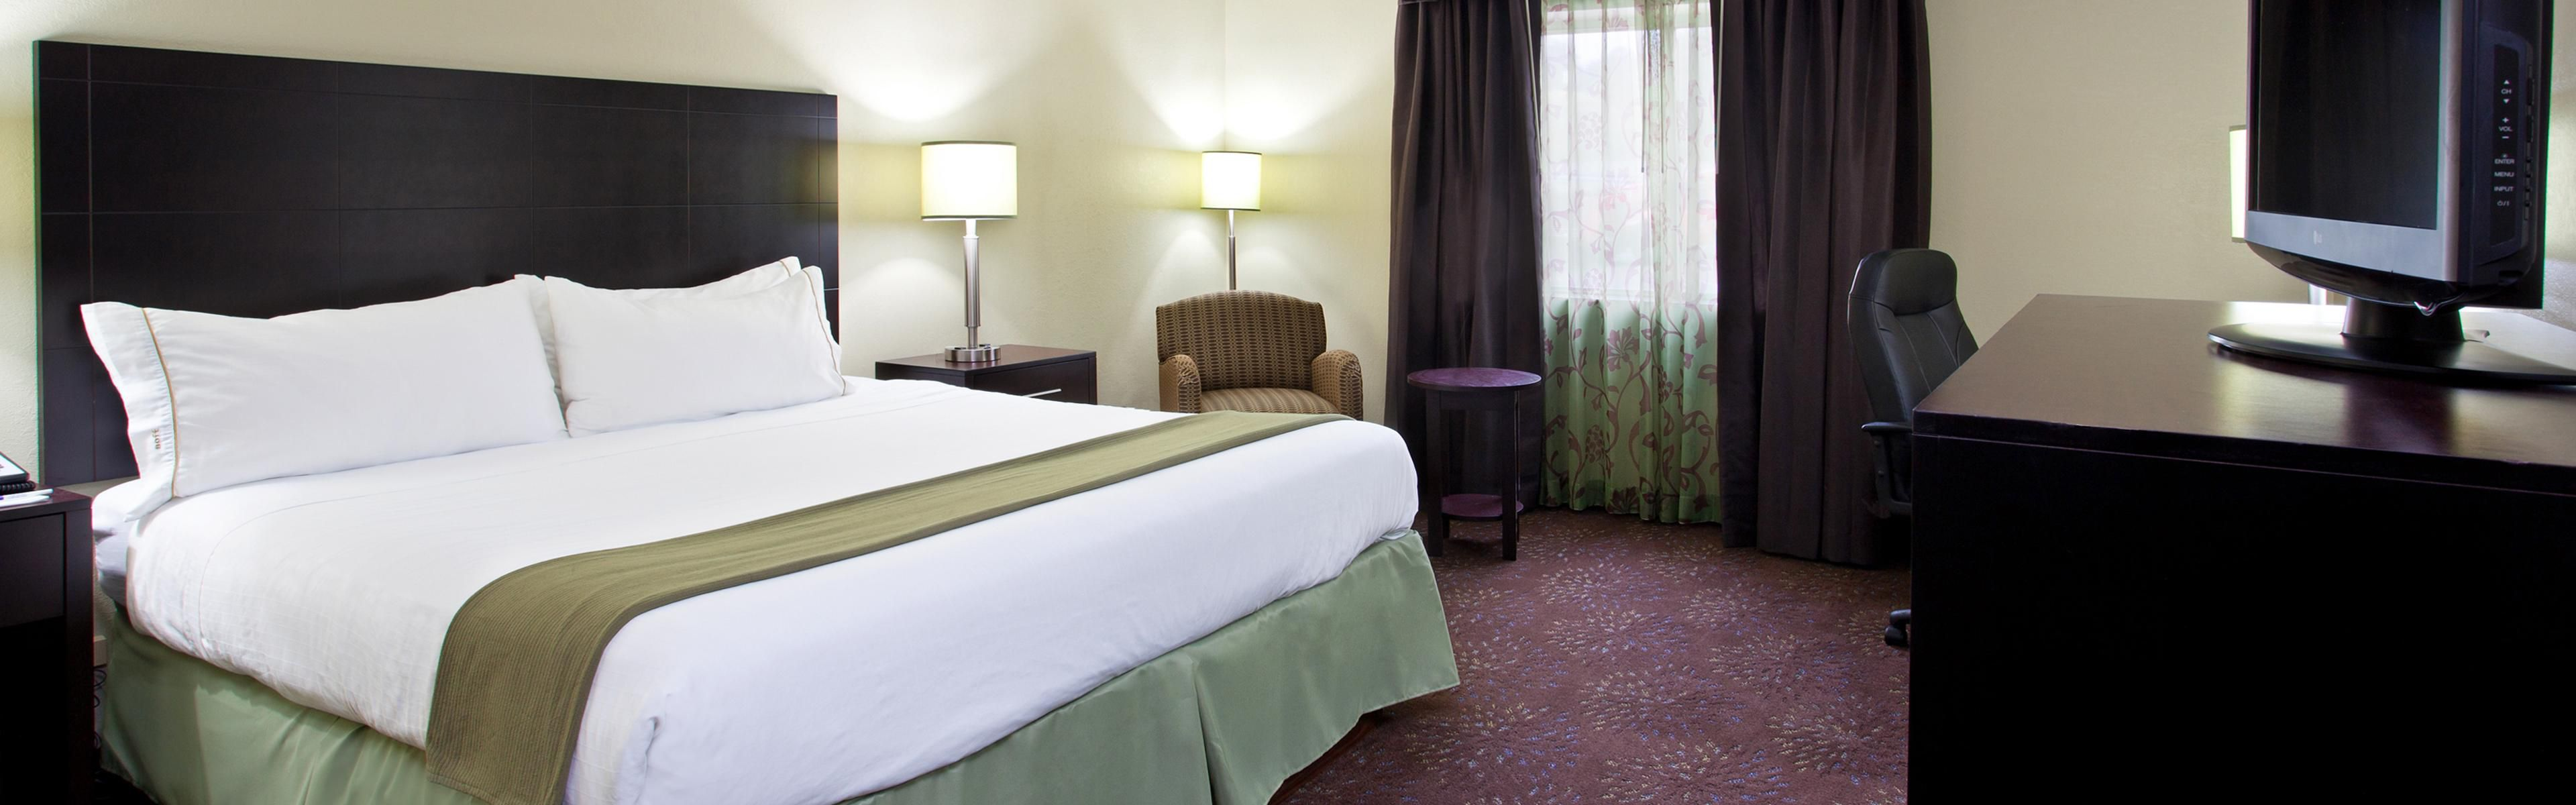 Holiday Inn Express & Suites Pittsburgh Airport image 1